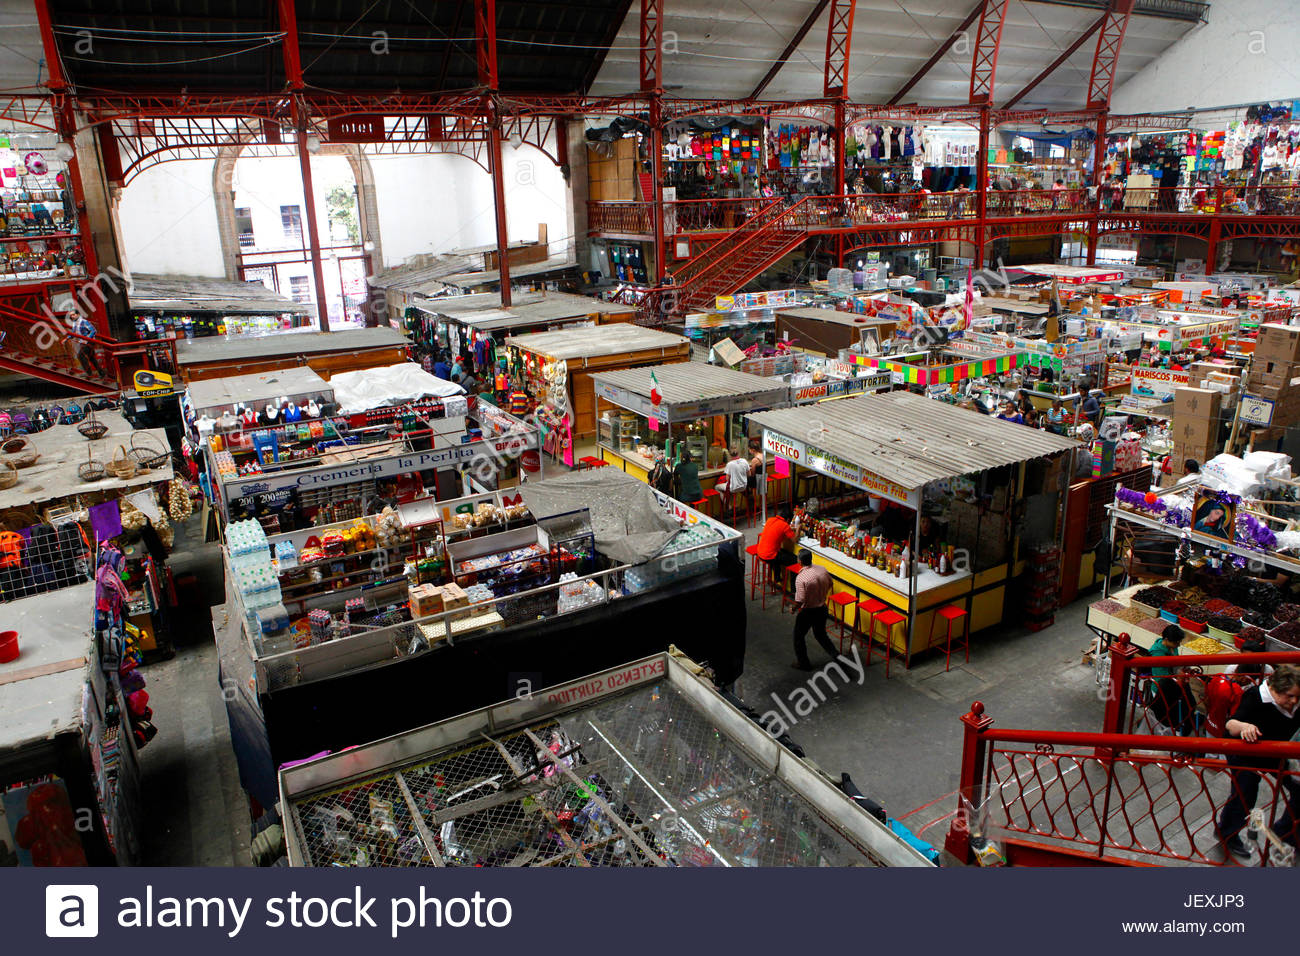 Hidalgo Market, a great place to buy local souvenirs in Guanajuato. - Stock Image